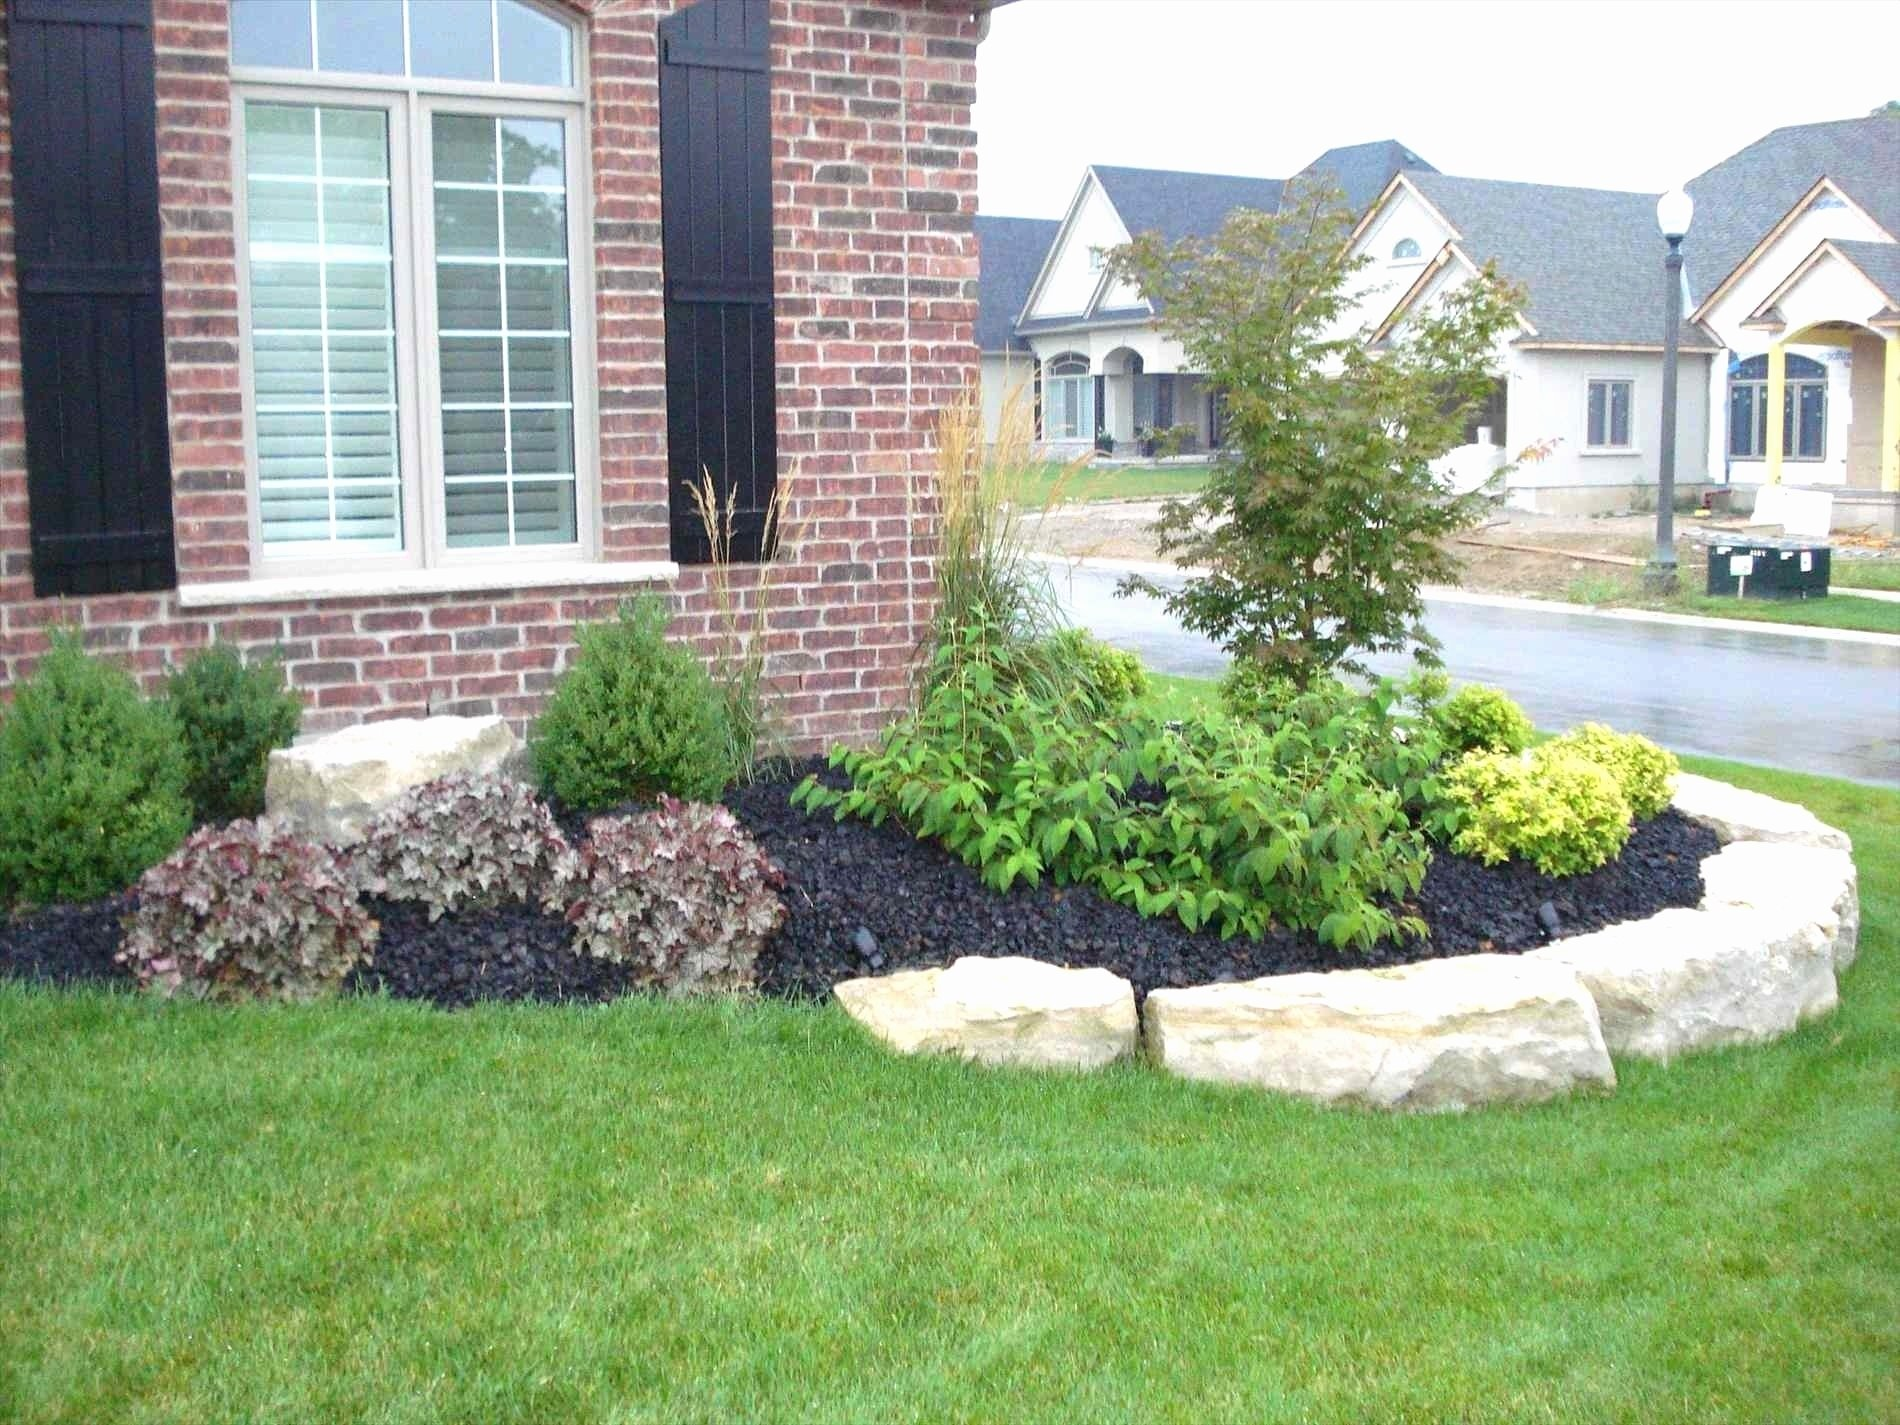 10 Lovable Front Of The House Landscaping Ideas 50 new front of house landscaping ideas pictures 50 photos 2020